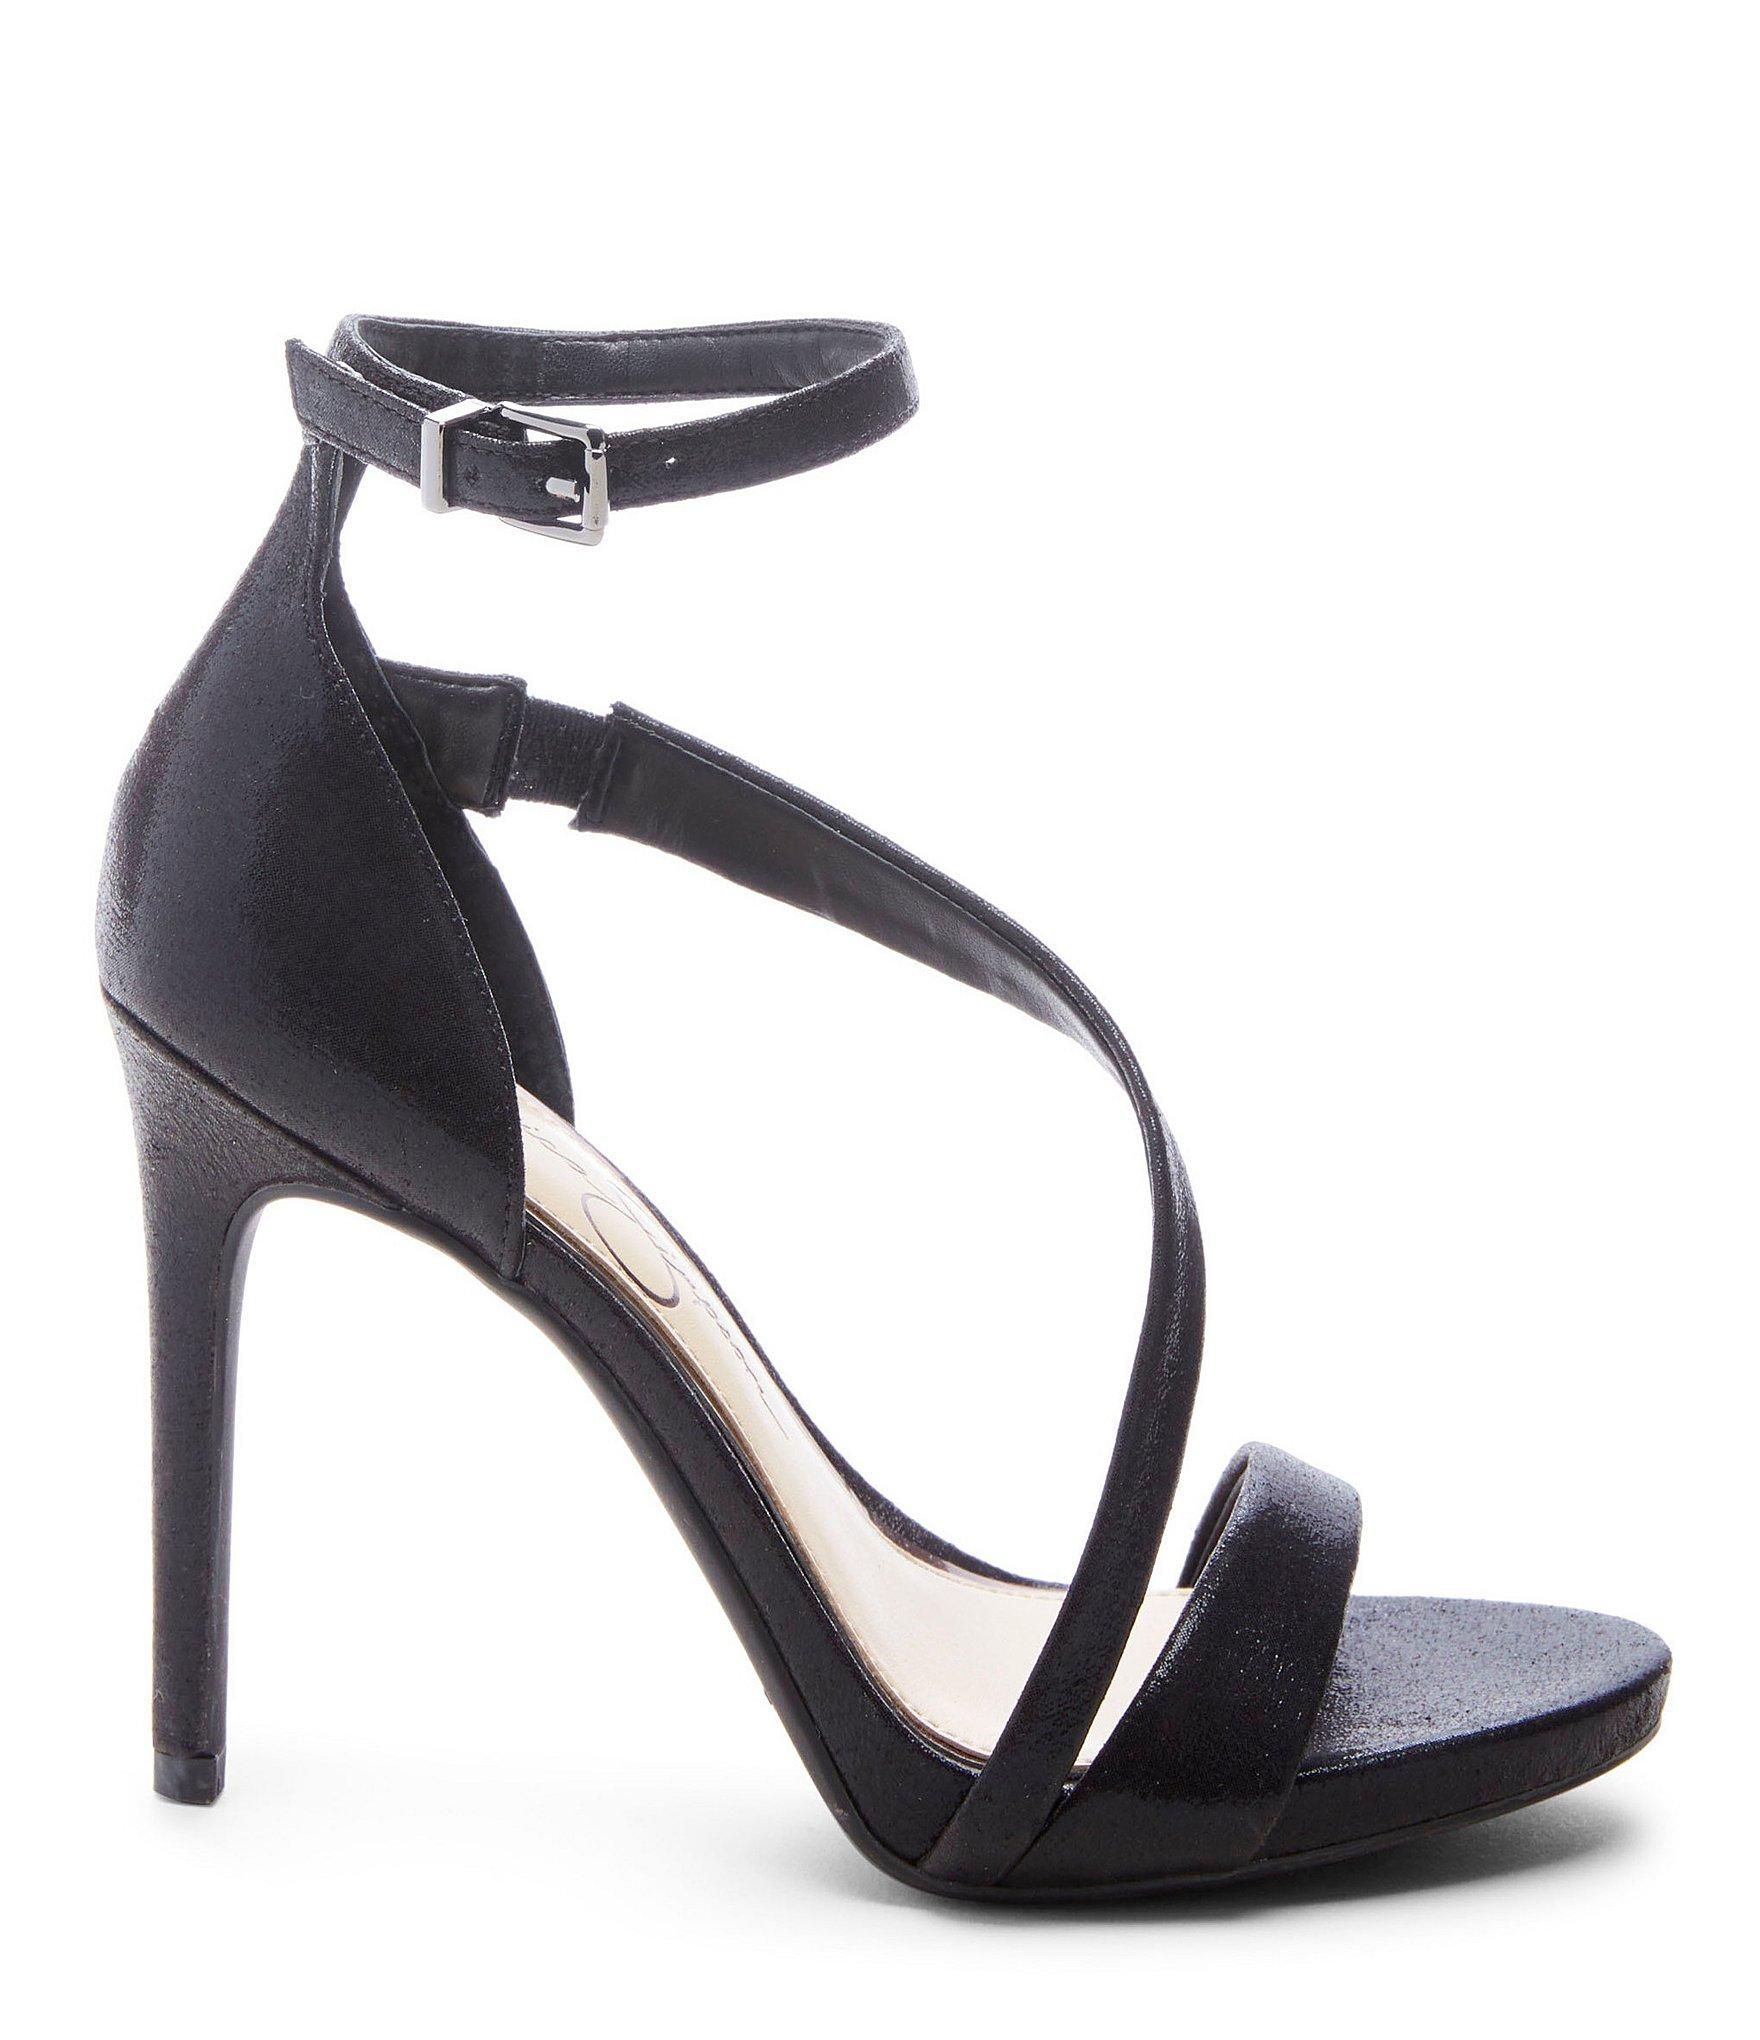 a7b47d5bbc9 Jessica Simpson - Black Rayli2 Strappy Dress Sandals - Lyst. View fullscreen